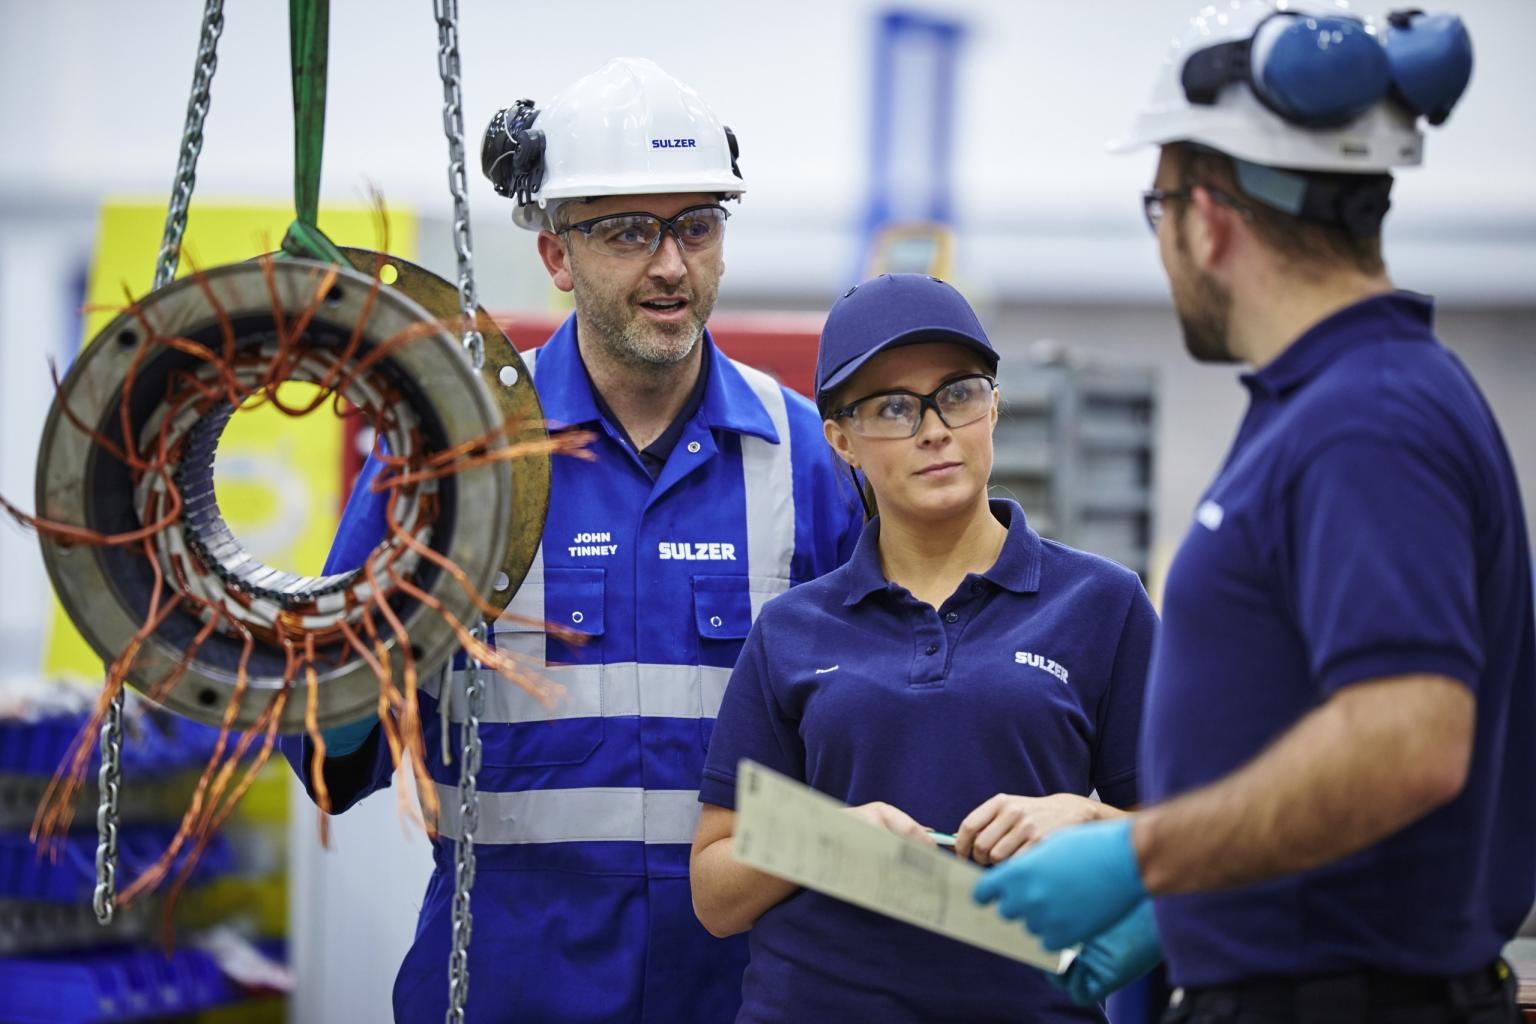 Sulzer is a global repairer and 24hr service provider with its own worldwide network of service centres